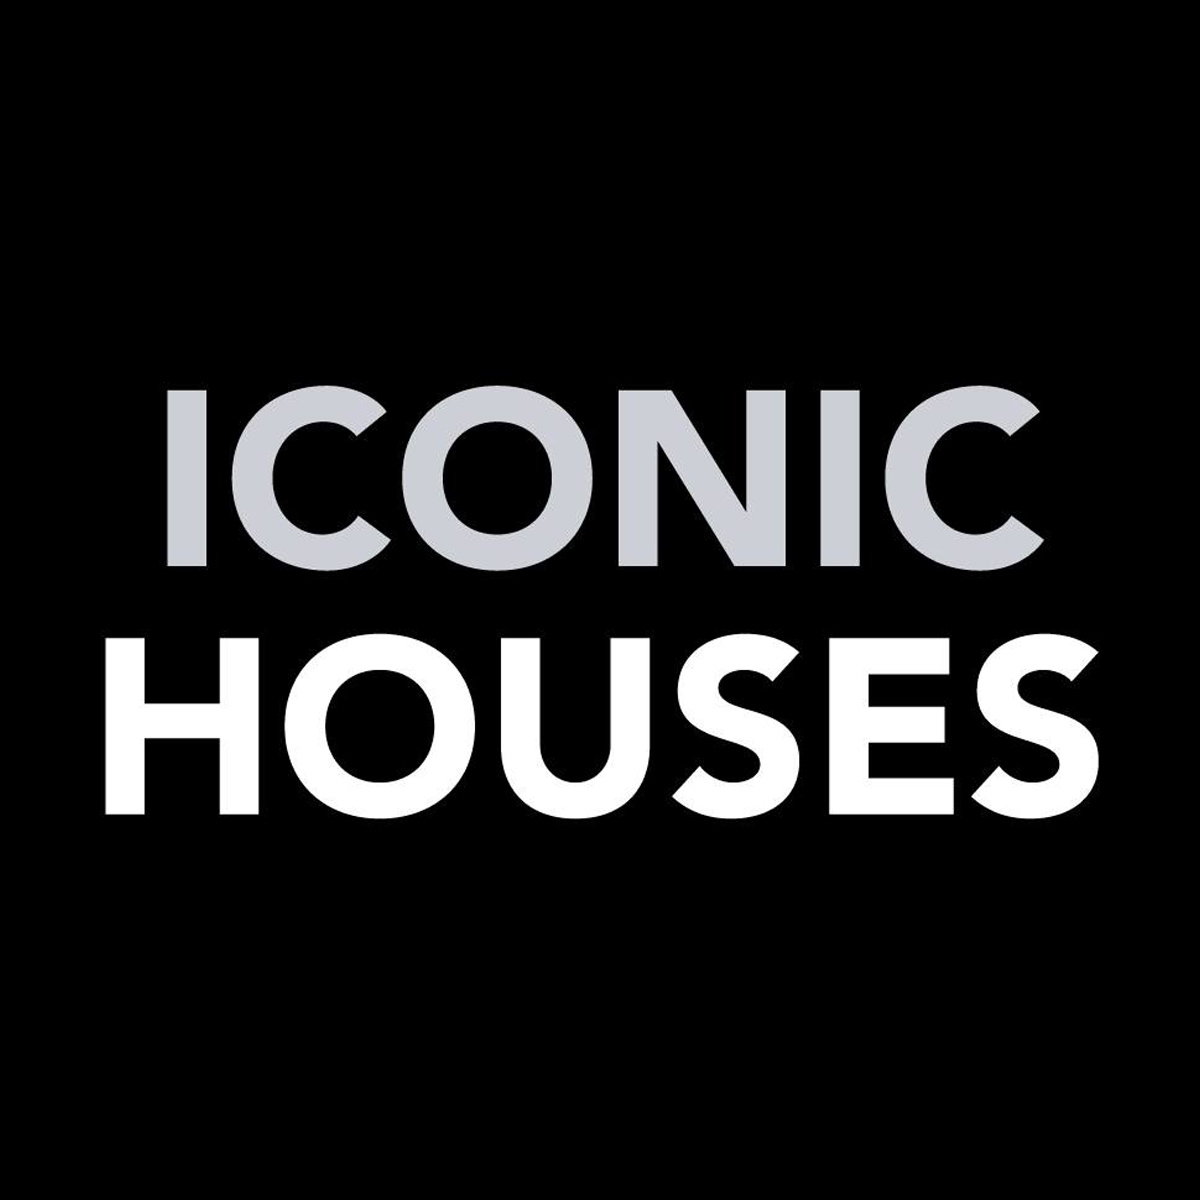 Iconic Houses Network Launches Watch List of Endangered Modern Houses